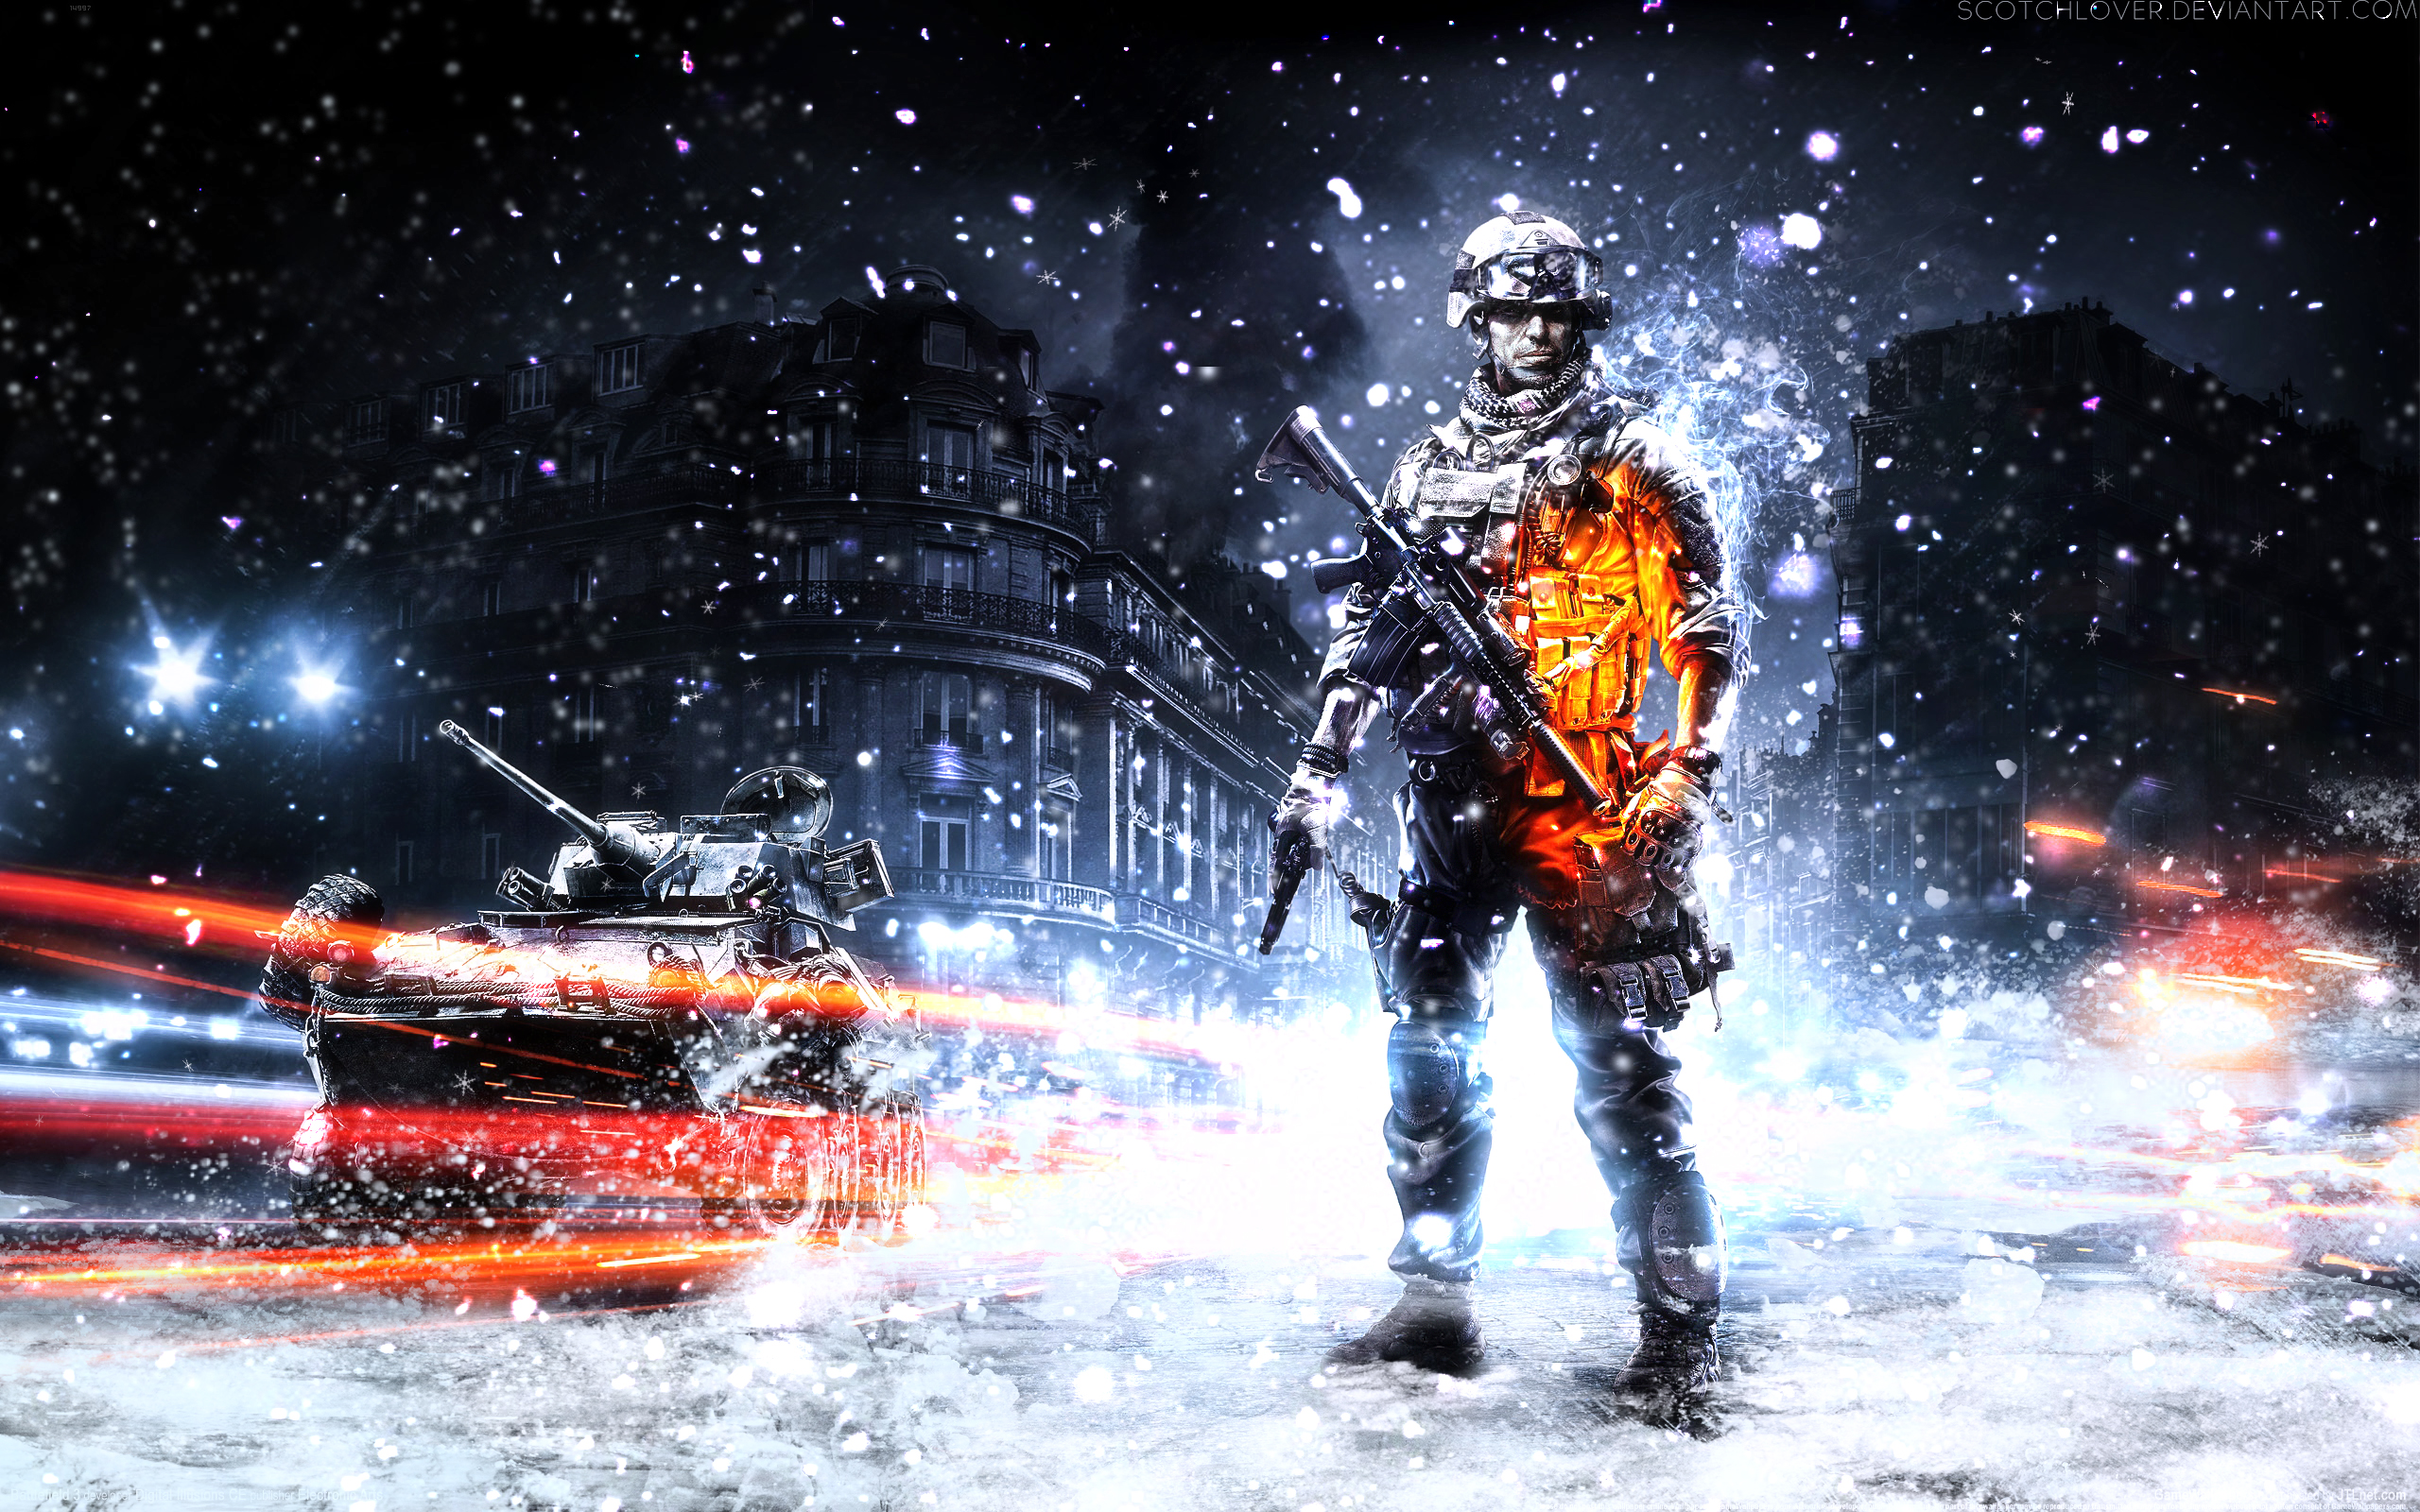 battlefield 3 winter wallpaperscotchlover on deviantart